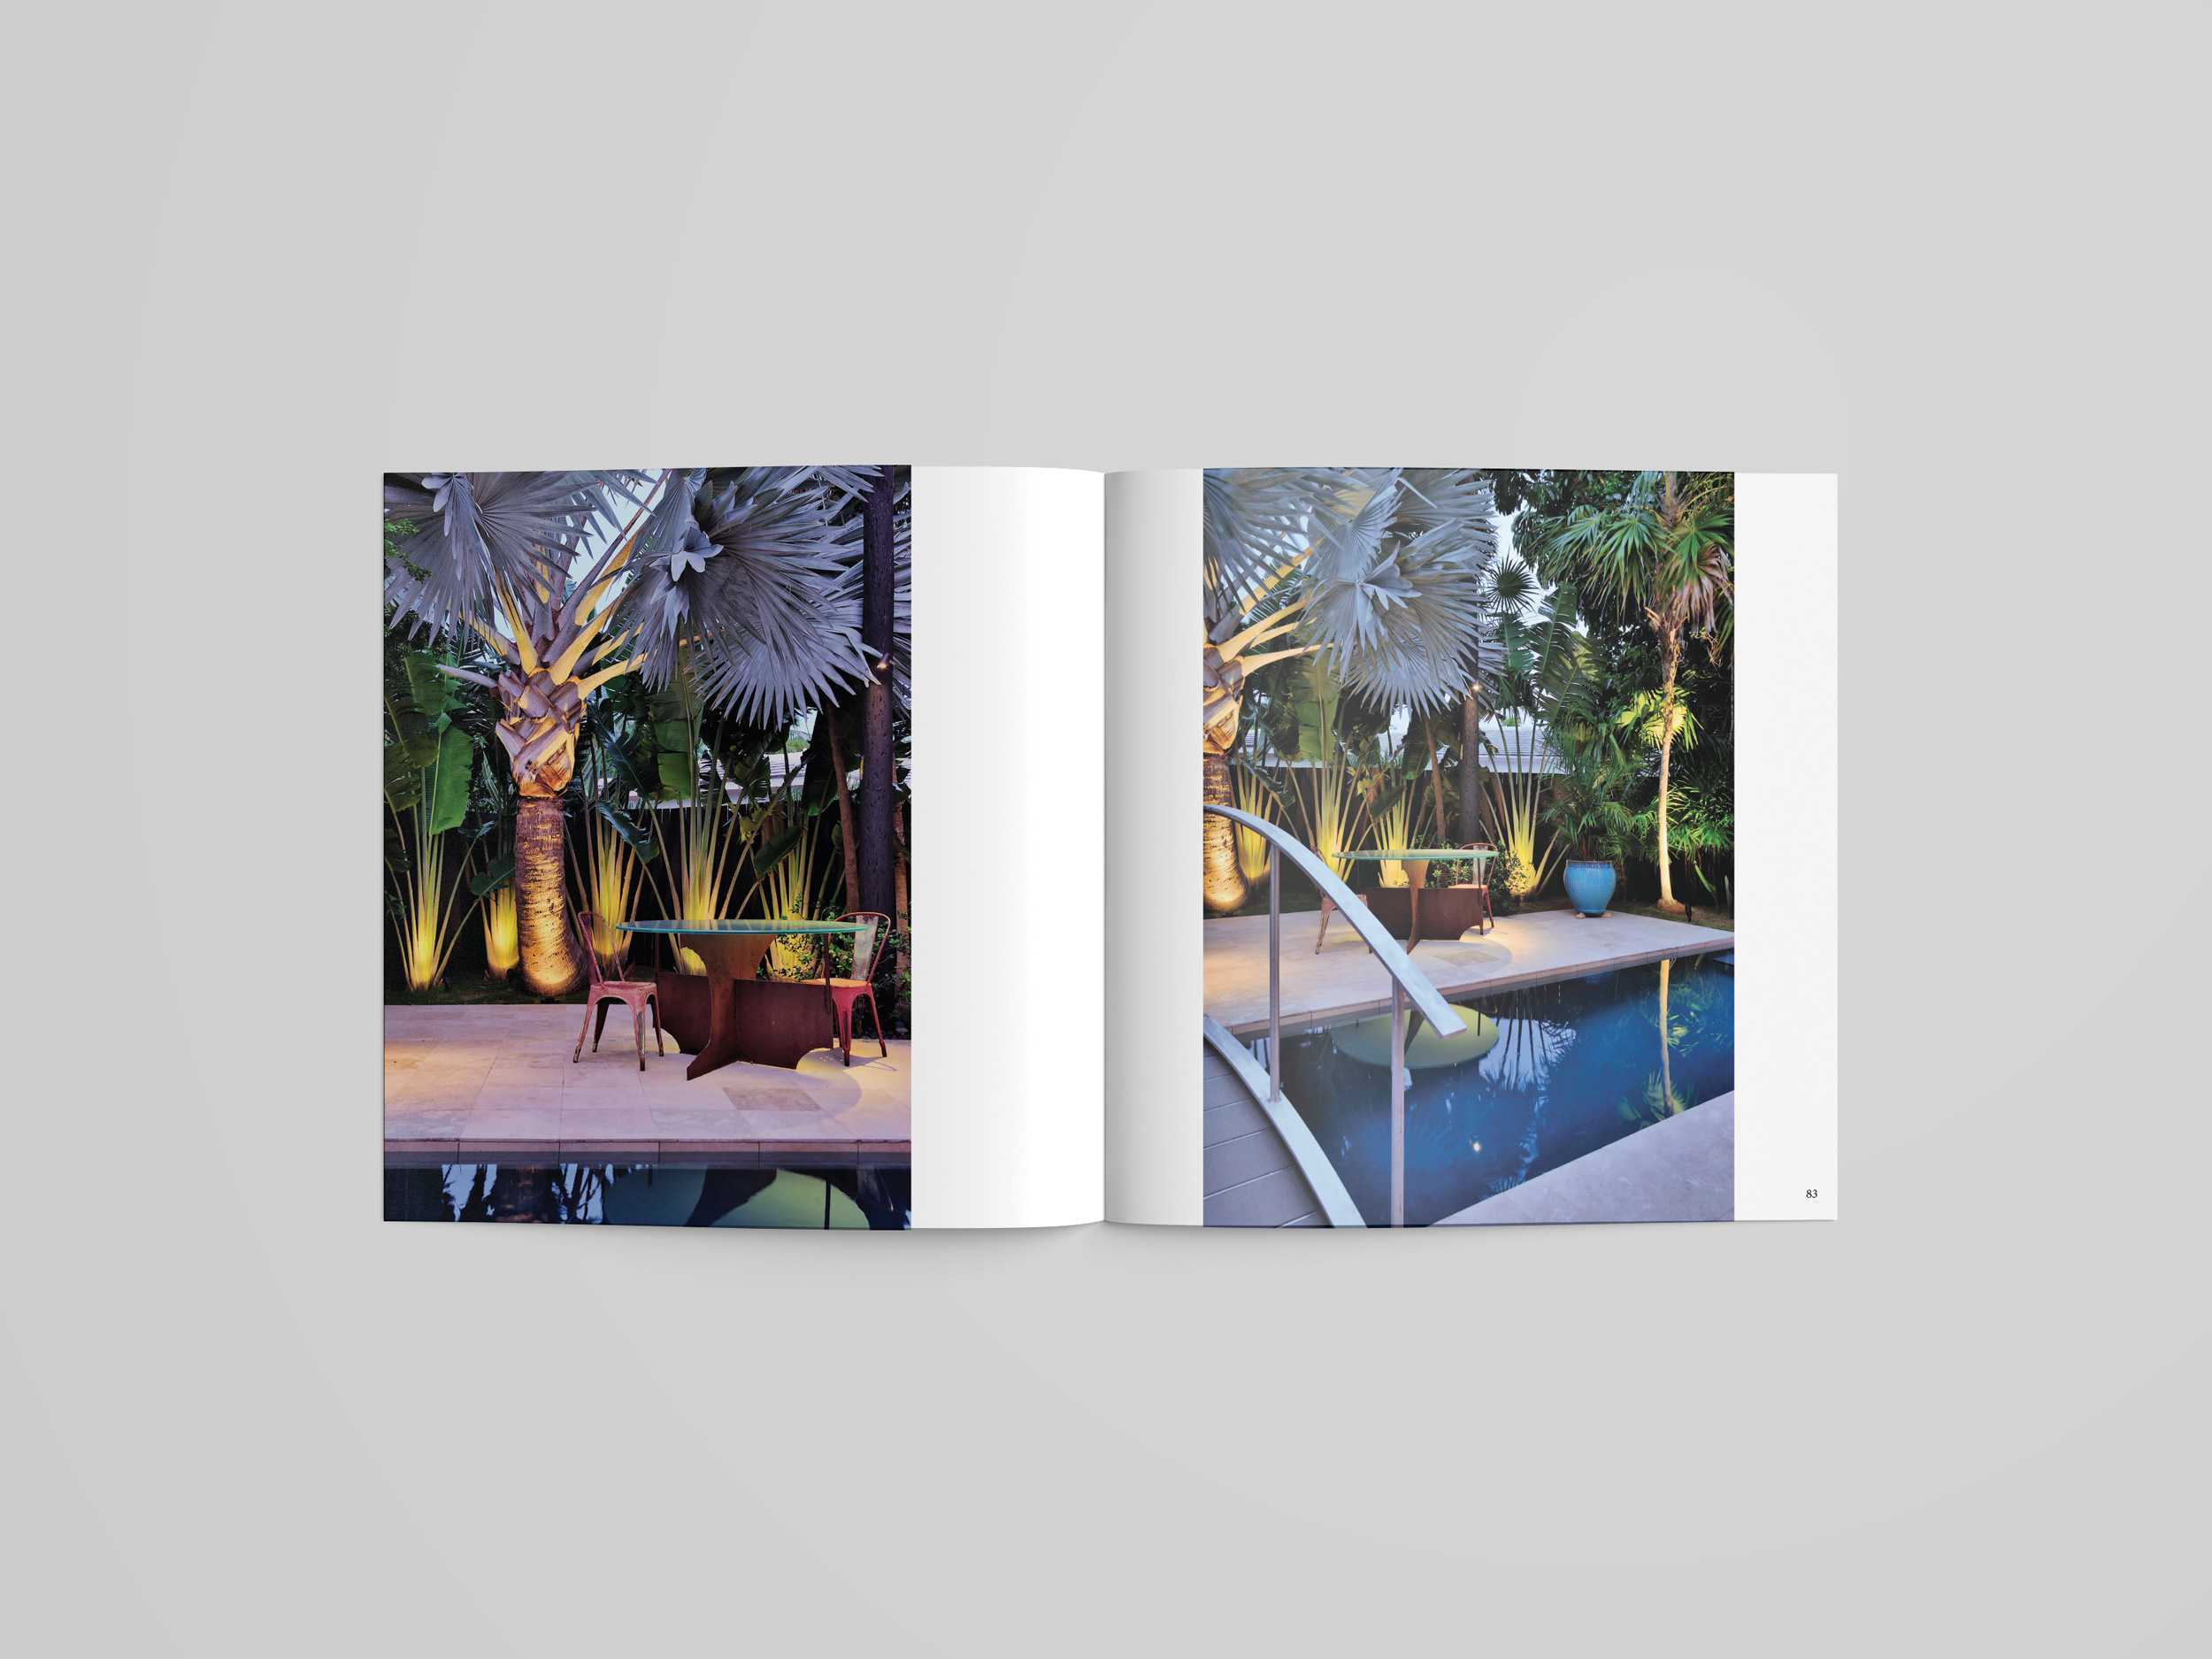 Debra Yates Key West art book pages exterior design